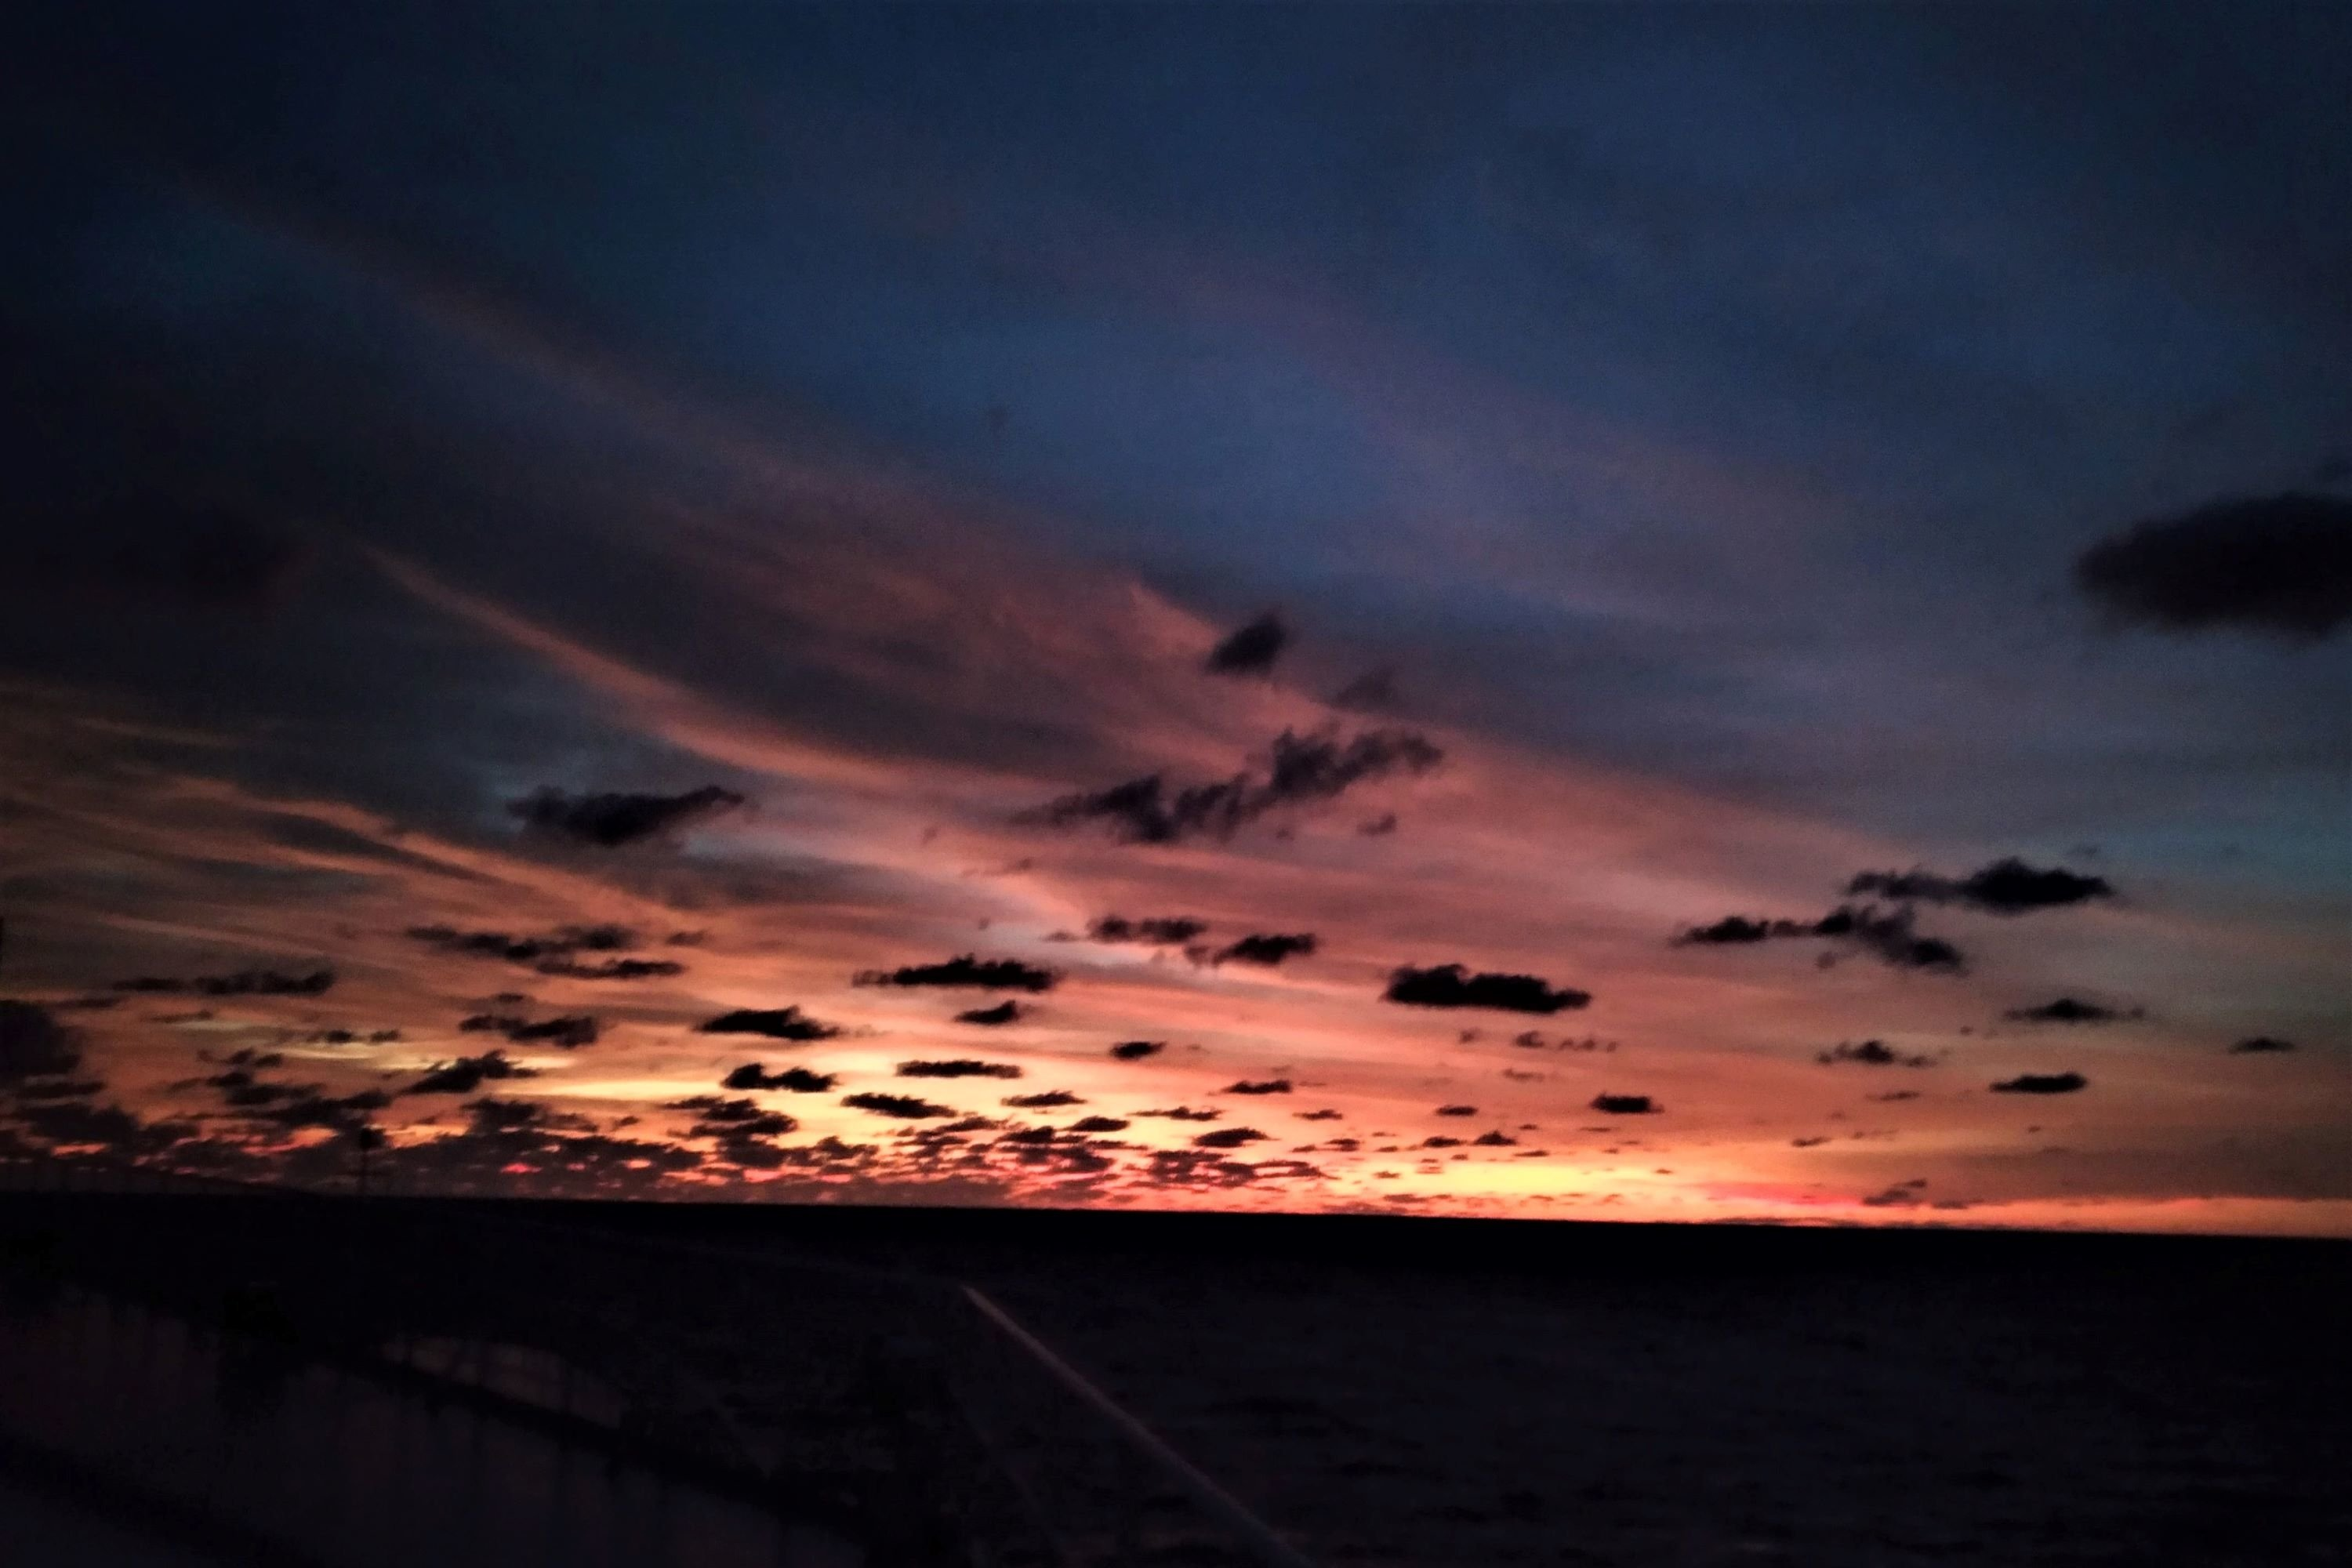 Awesome sunsets at sea example image 1